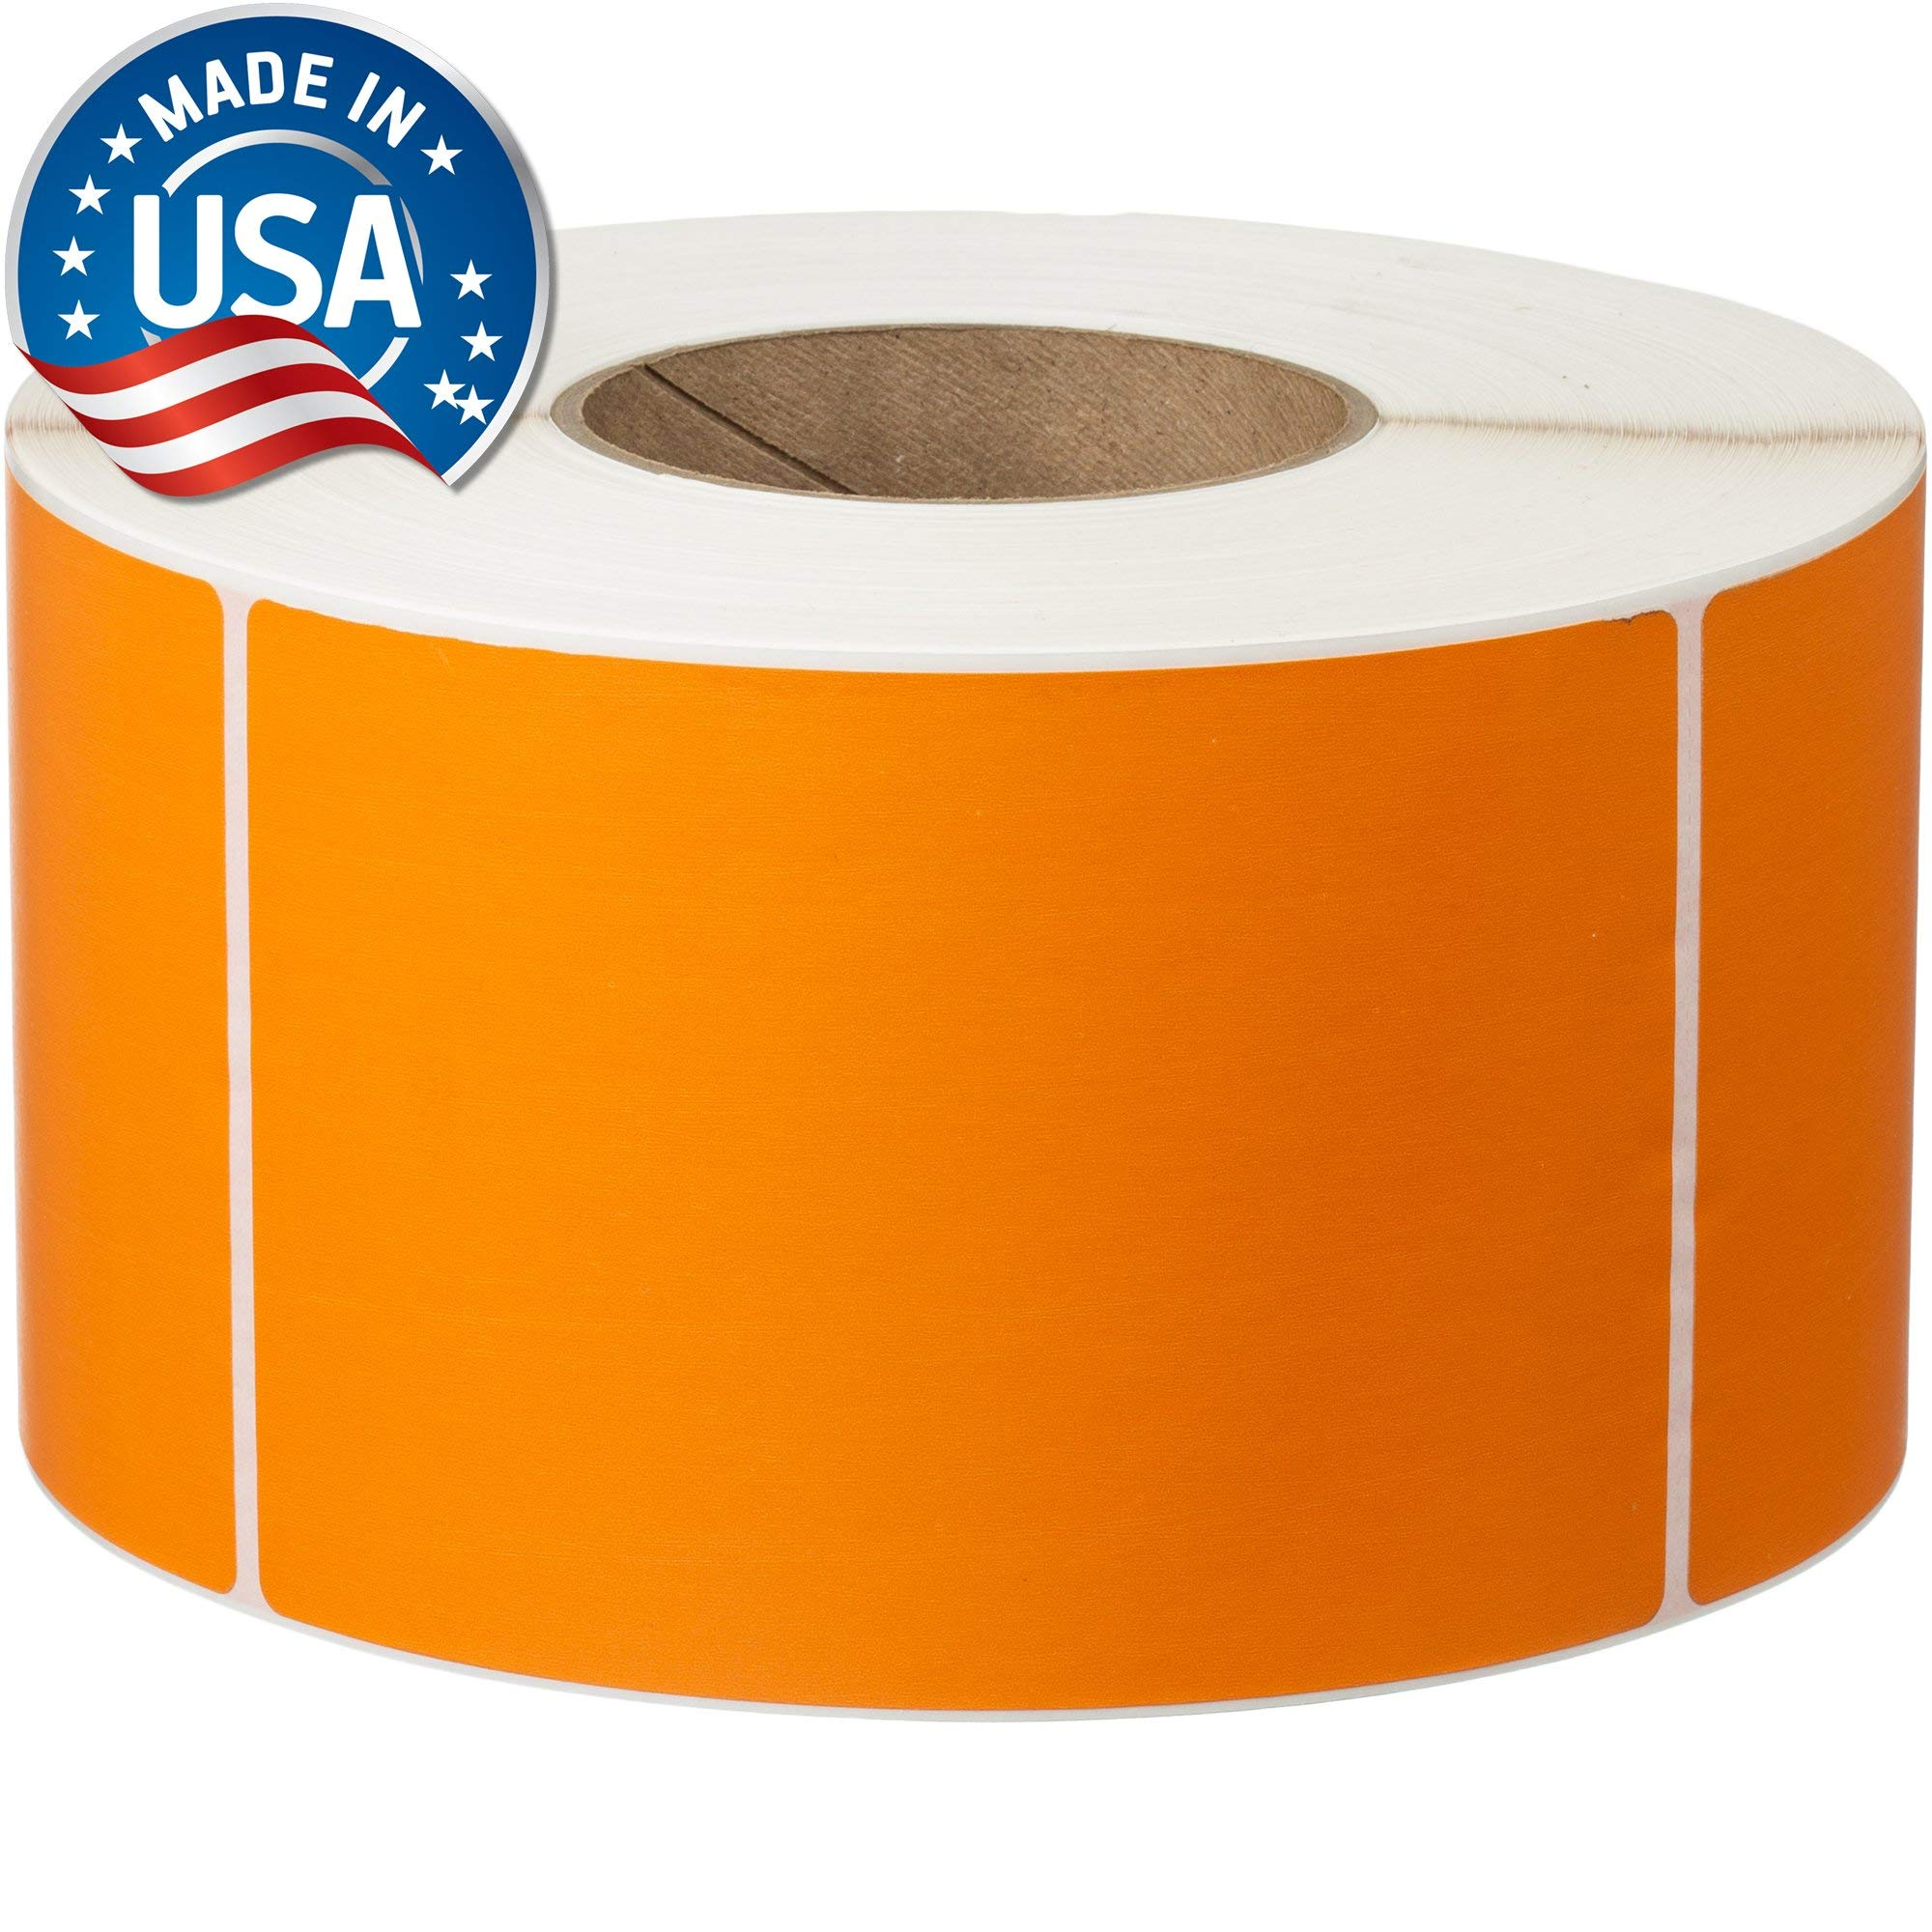 Direct Thermal Labels - 4'' x 6'' - Orange - 3'' Core - Works with Zebra Thermal Desktop Printers, Datamax, Sato, Intermec and Honeywell Printers - Made in USA by Labels for Us